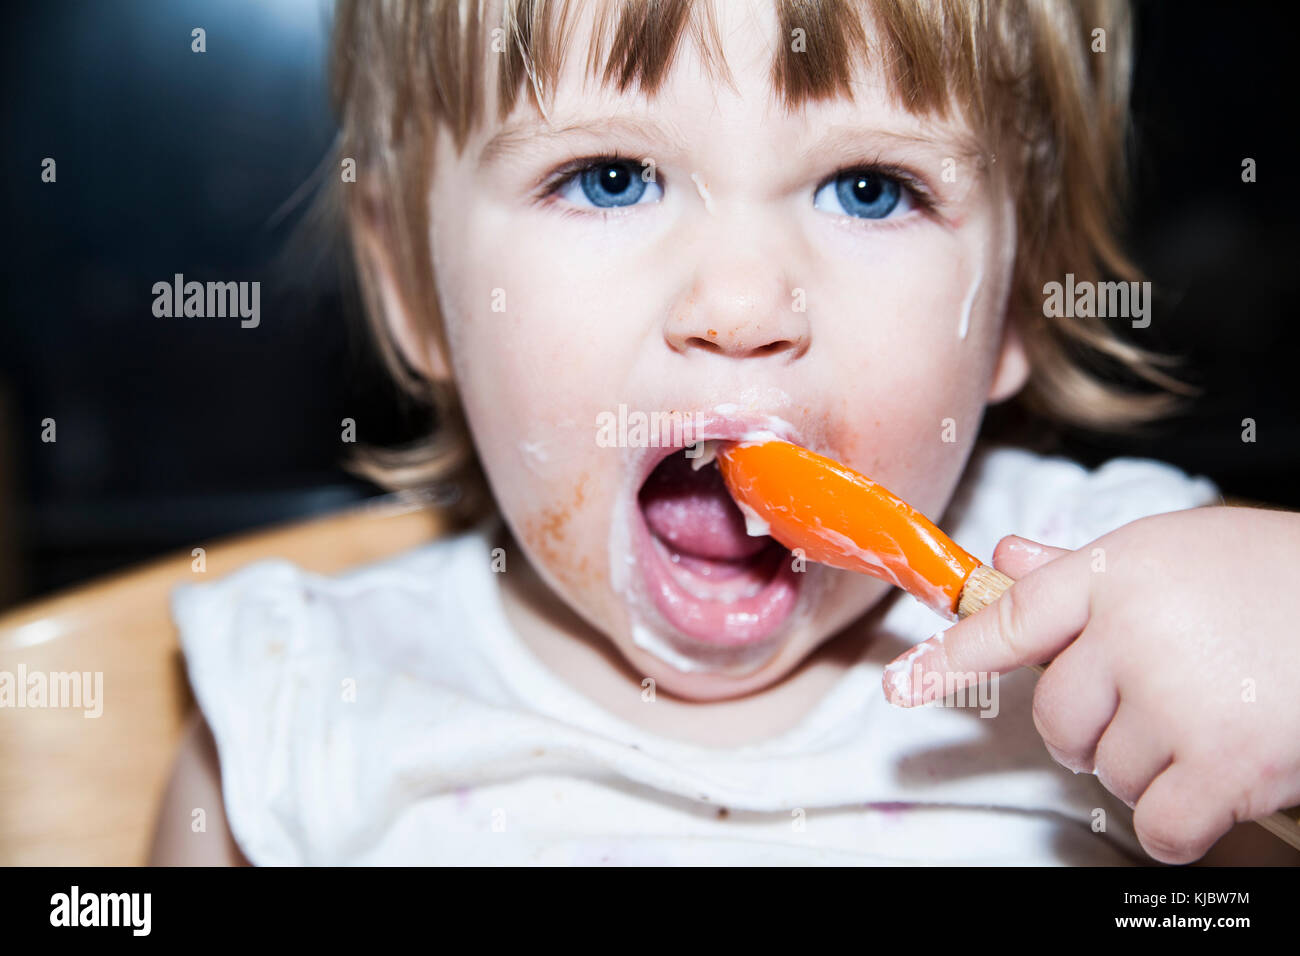 Messy child eating with a spoon - Stock Image